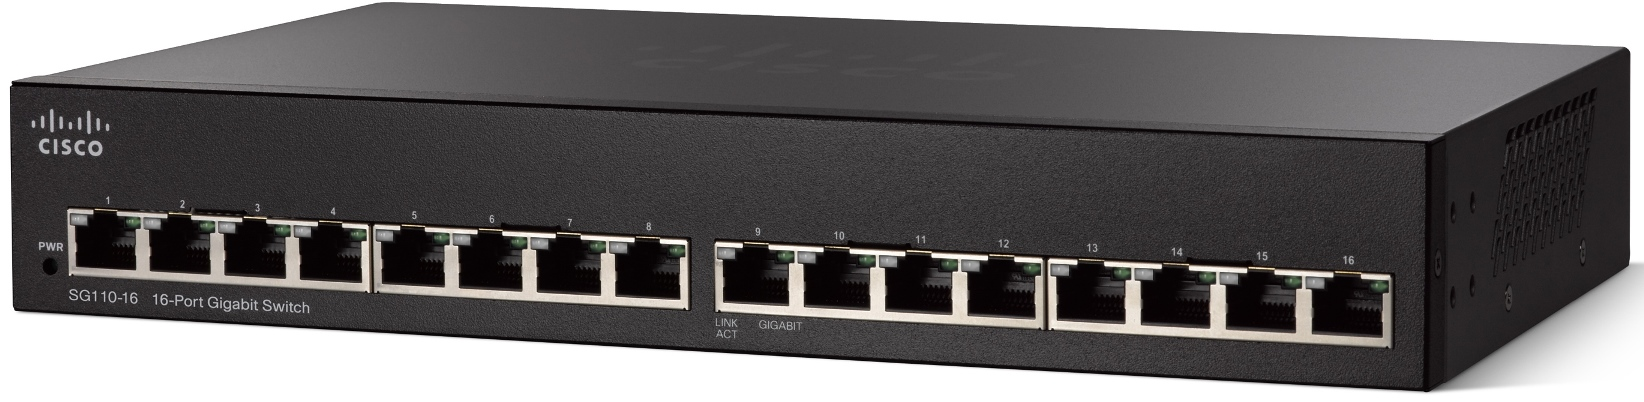 Cisco SG110-16 16-Port Gigabit Switch